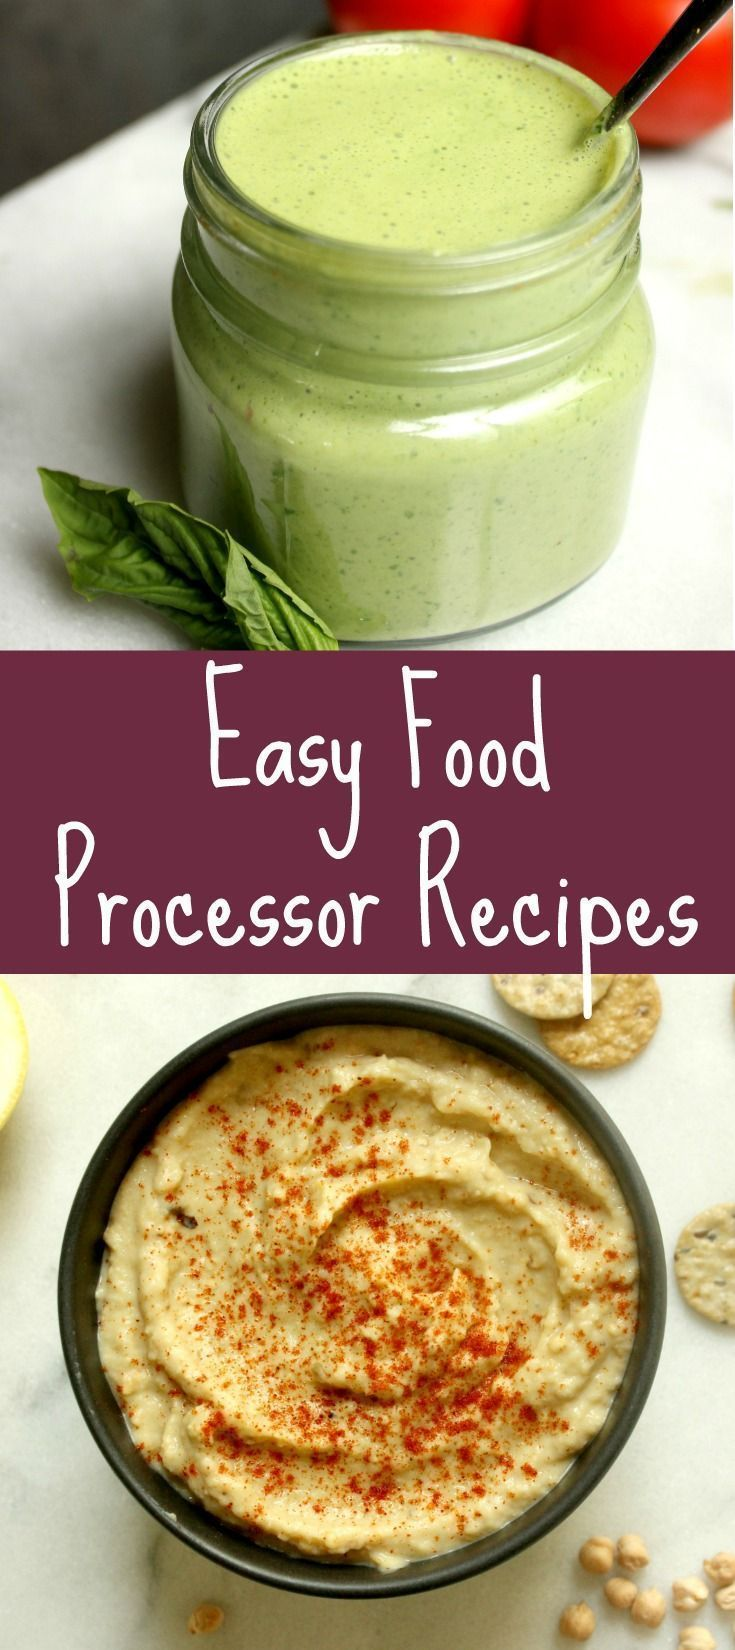 Start saving money now easy food processor recipes easy food processor recipes forumfinder Gallery